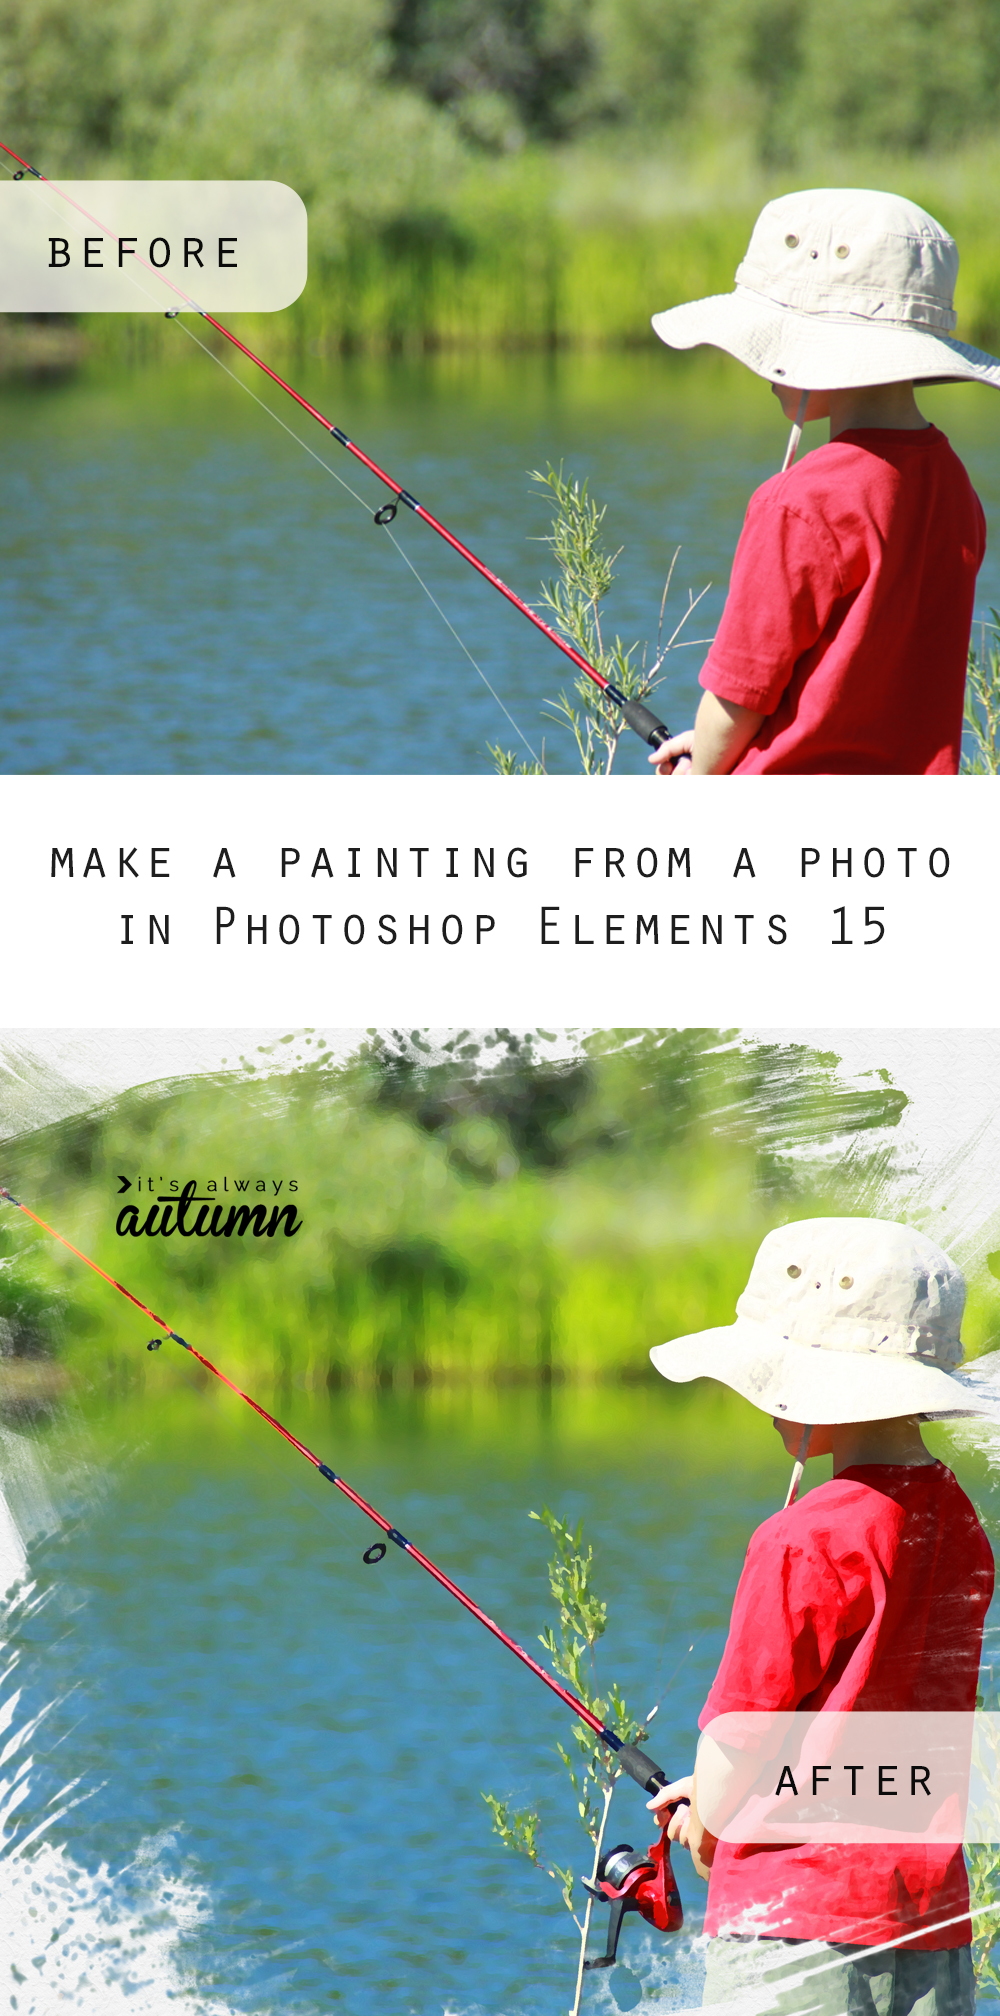 Learn how to turn a photo into a painting in just a few clicks using the new guided edit in Photoshop Elements 15.